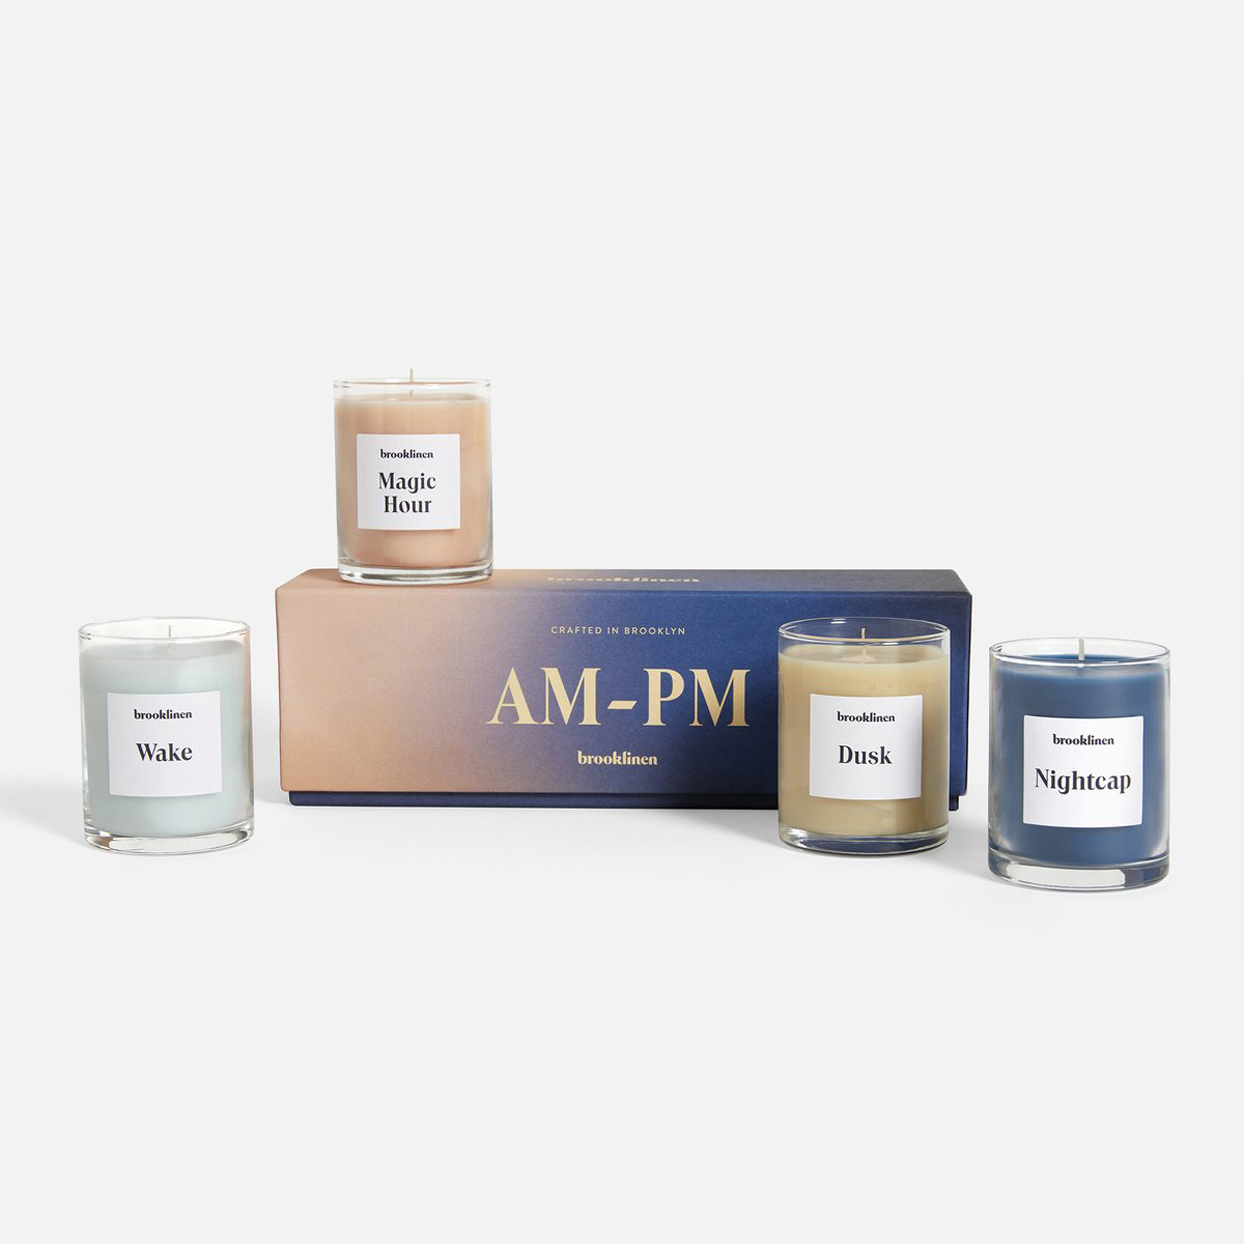 candles and packaging for Brooklinen candles